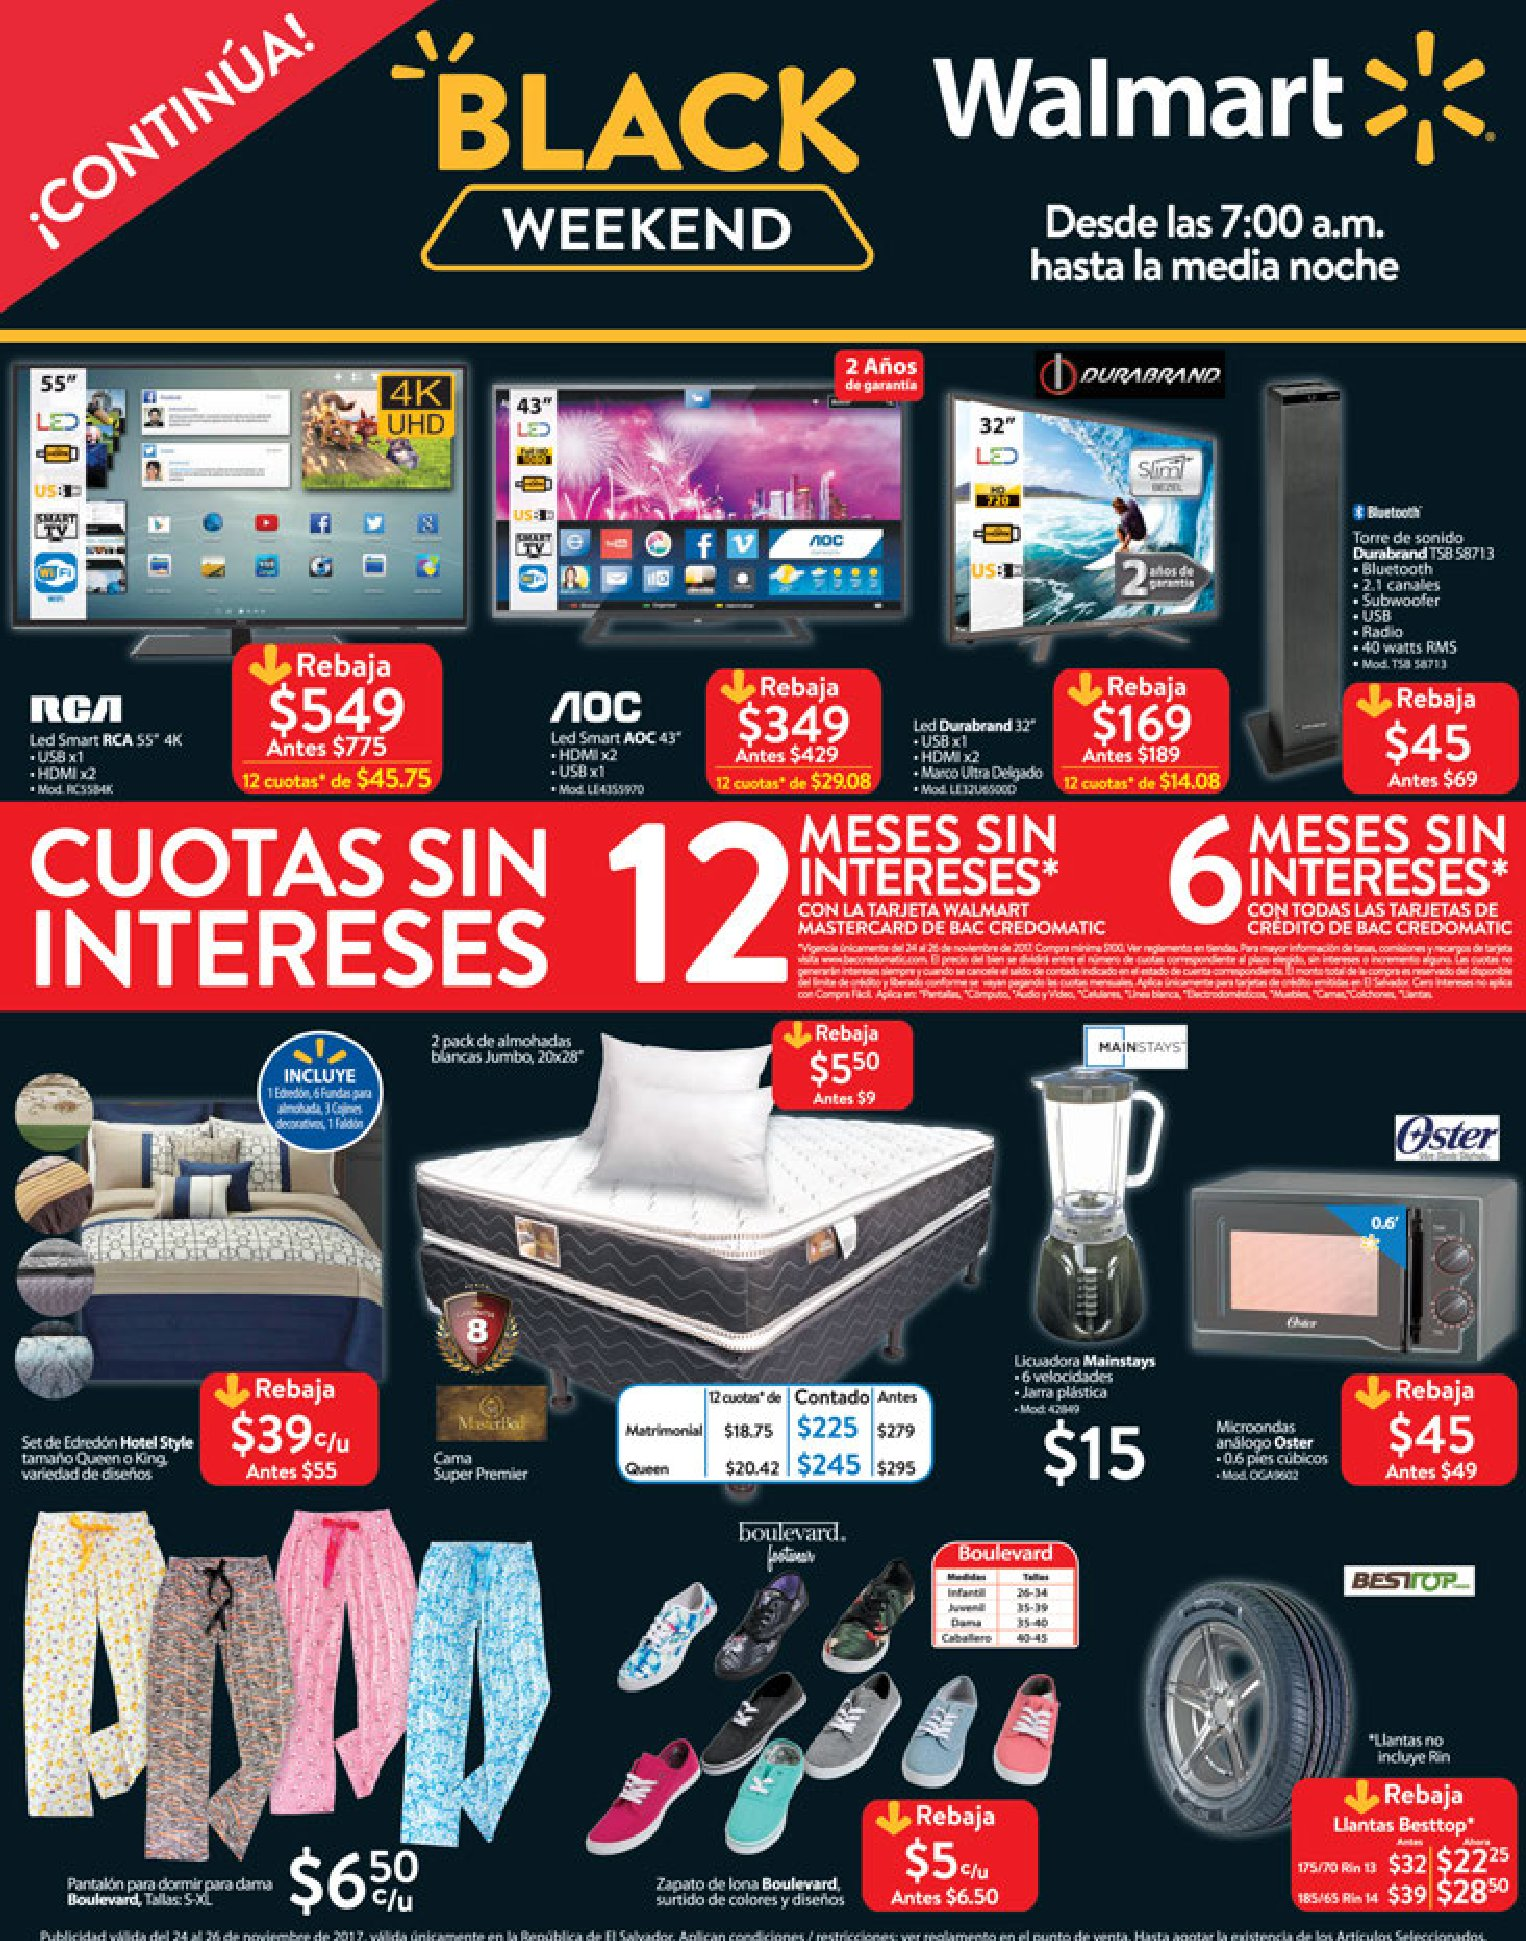 The Walmart Black Friday Ad has LANDED! Doors open at 6 p.m. (local time) on Thanksgiving night, and you can shop the entire day online. Prices are valid all day Friday, and the online sale starts Wednesday, November 21 at 10 pm EST.